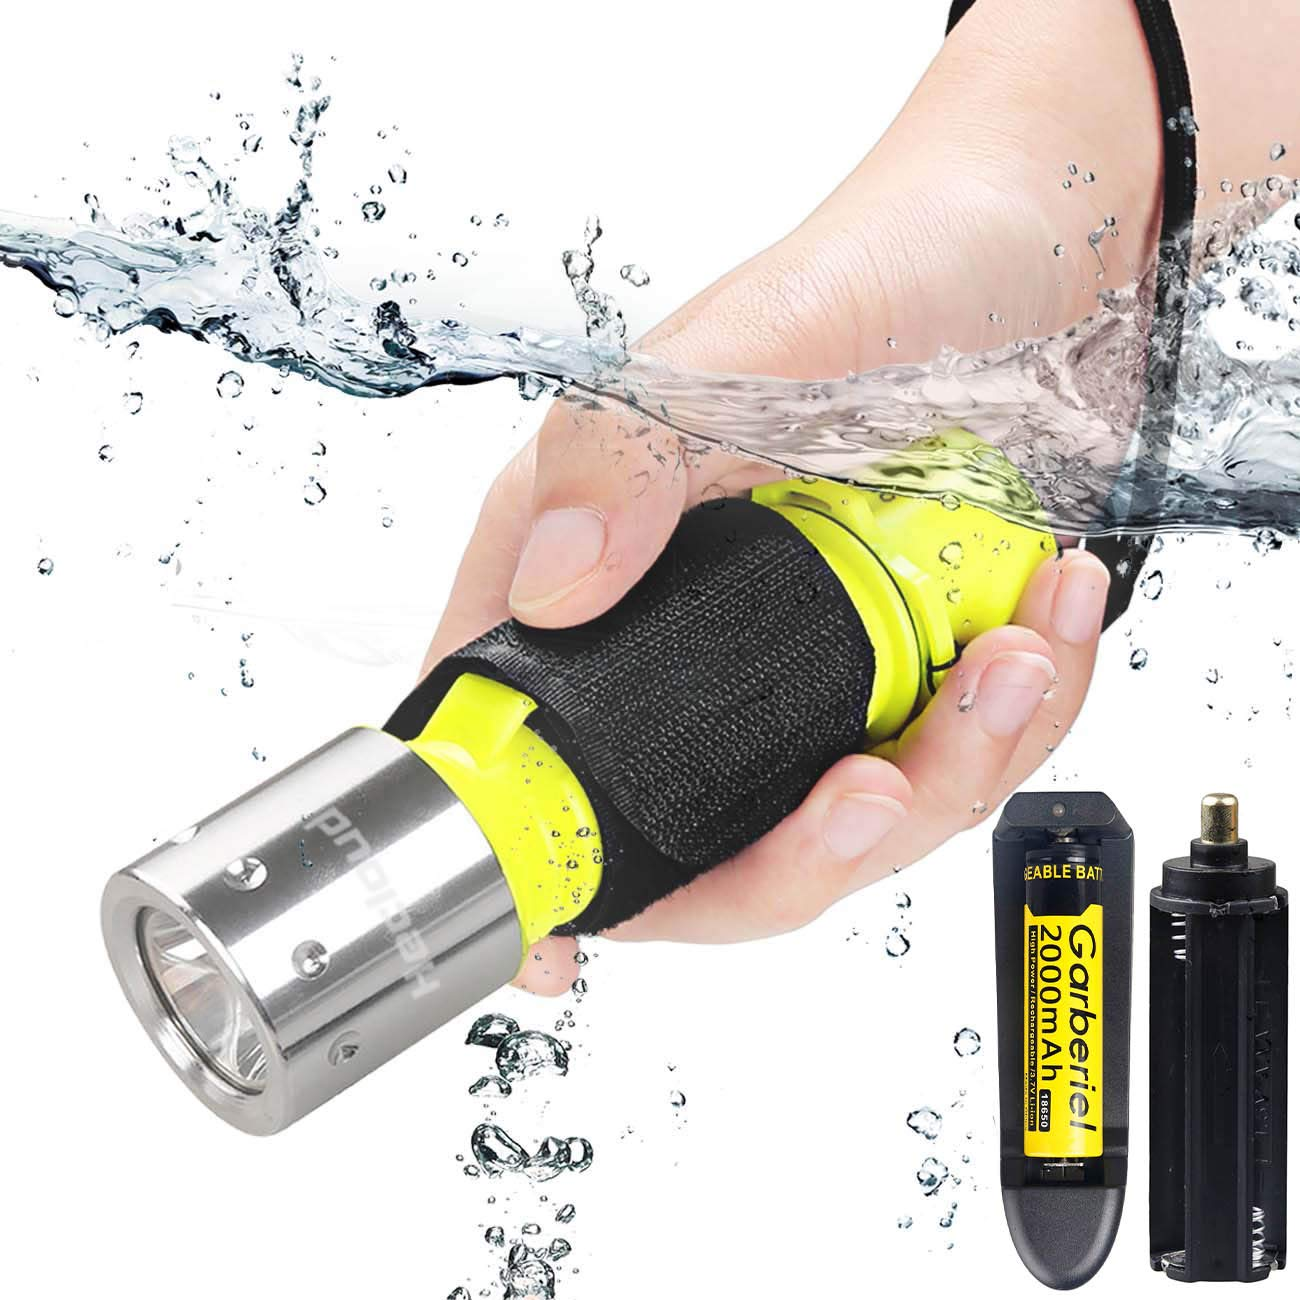 T6 Professional Diving Light Underwater Flashlights Waterproof Torch Scuba Diving Flashlight Included Battery and Charger